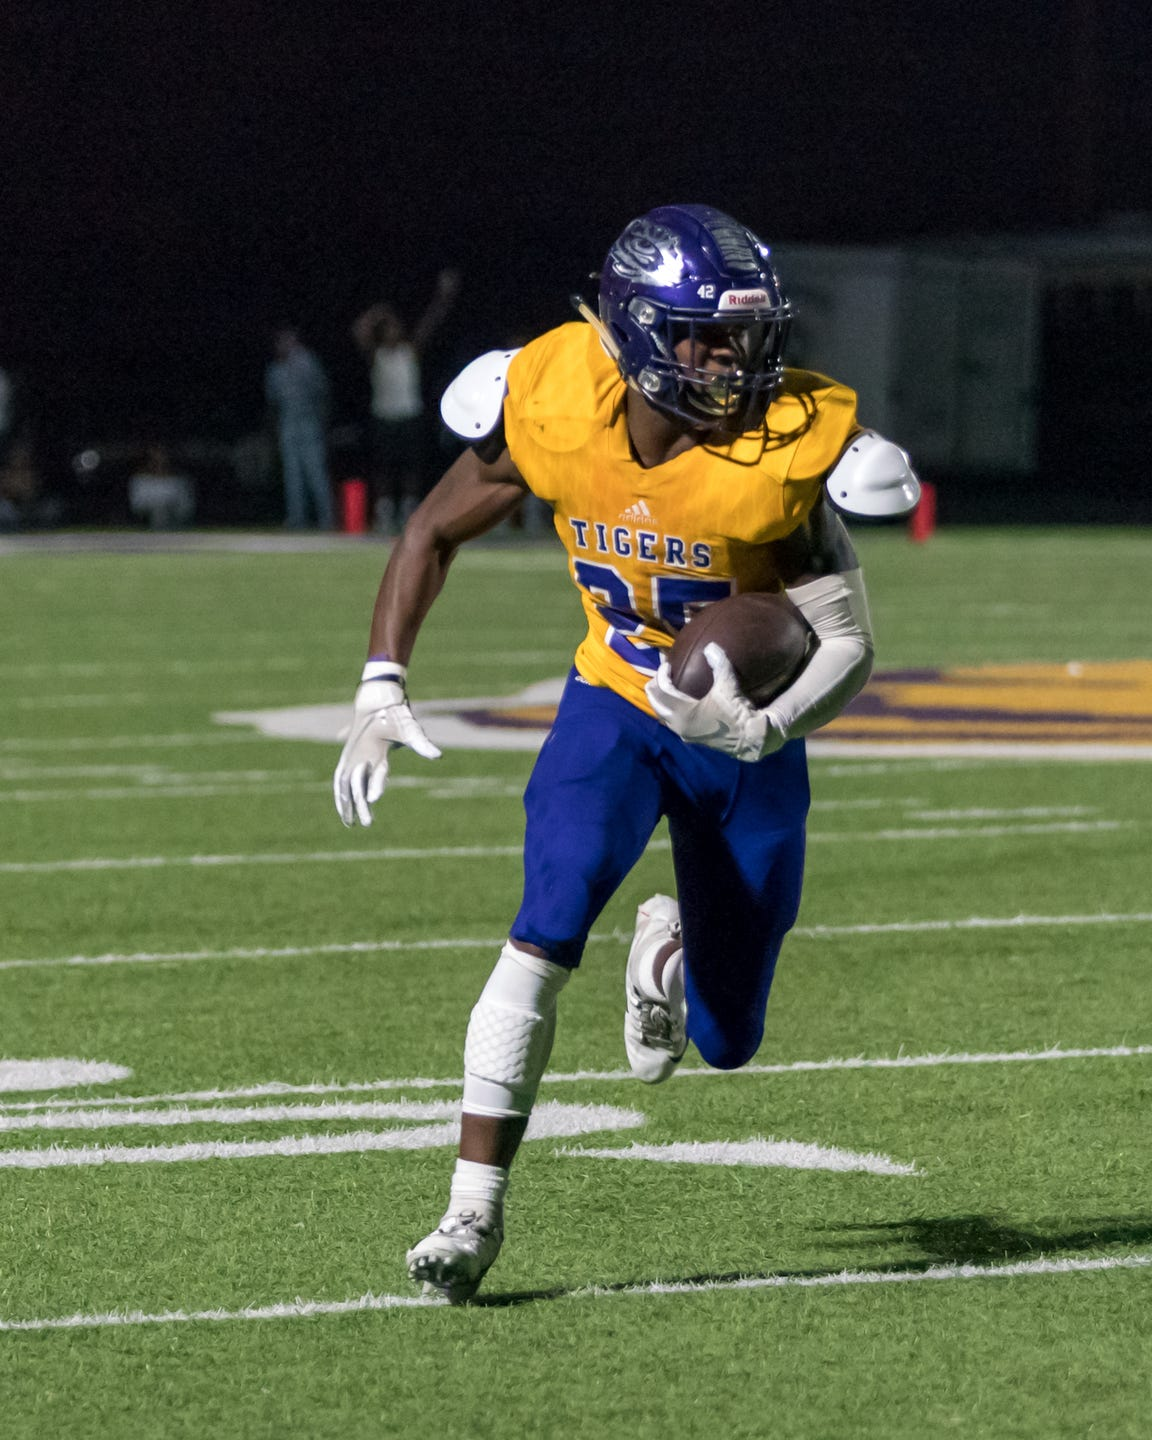 Logansport running back Xavier Simpson set a school record with touchdowns runs of 97 and 91 yards in a single game this season.